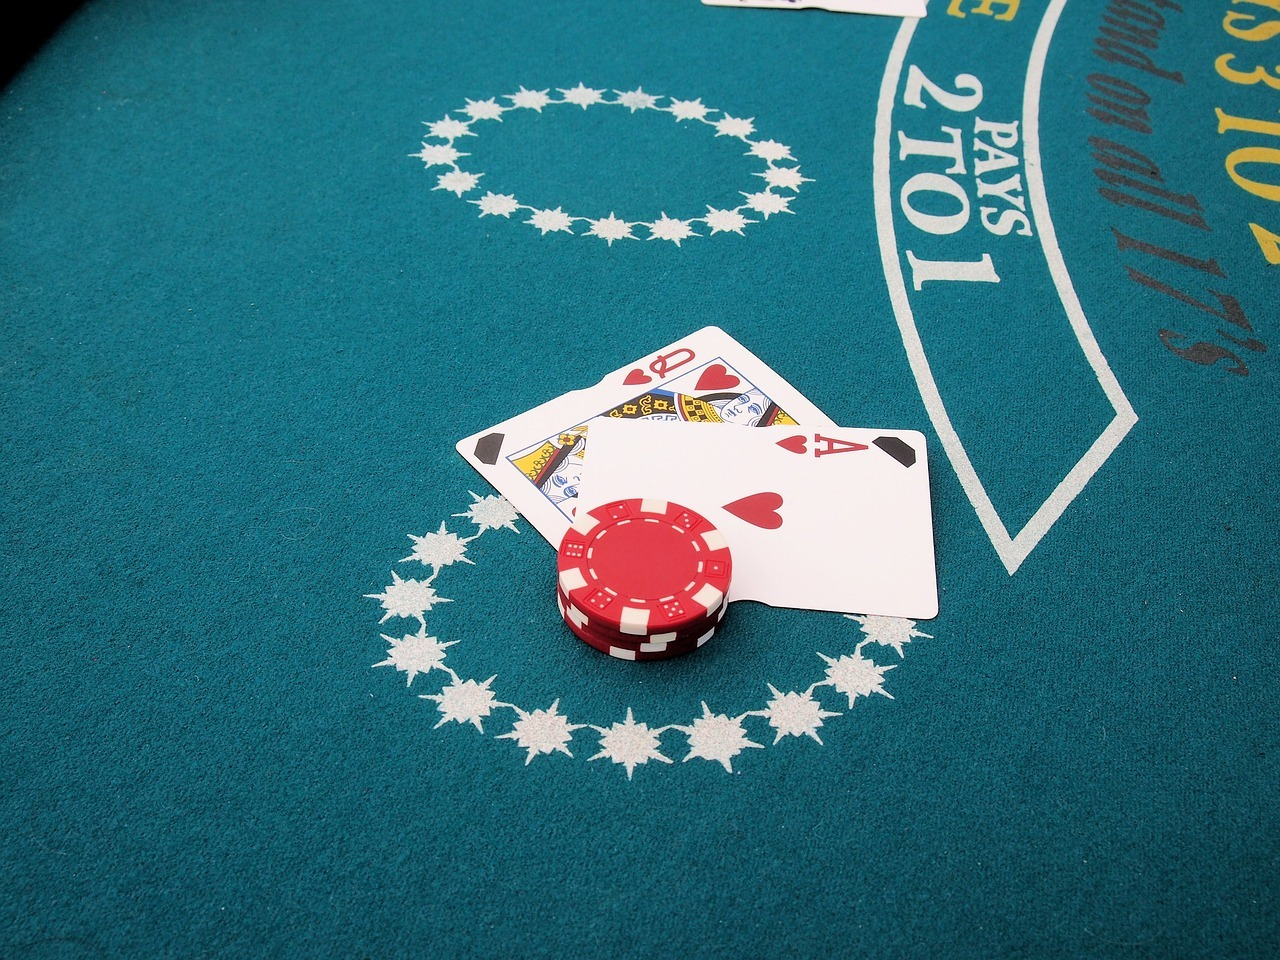 21 Blackjack, una apasionante historia real de casinos